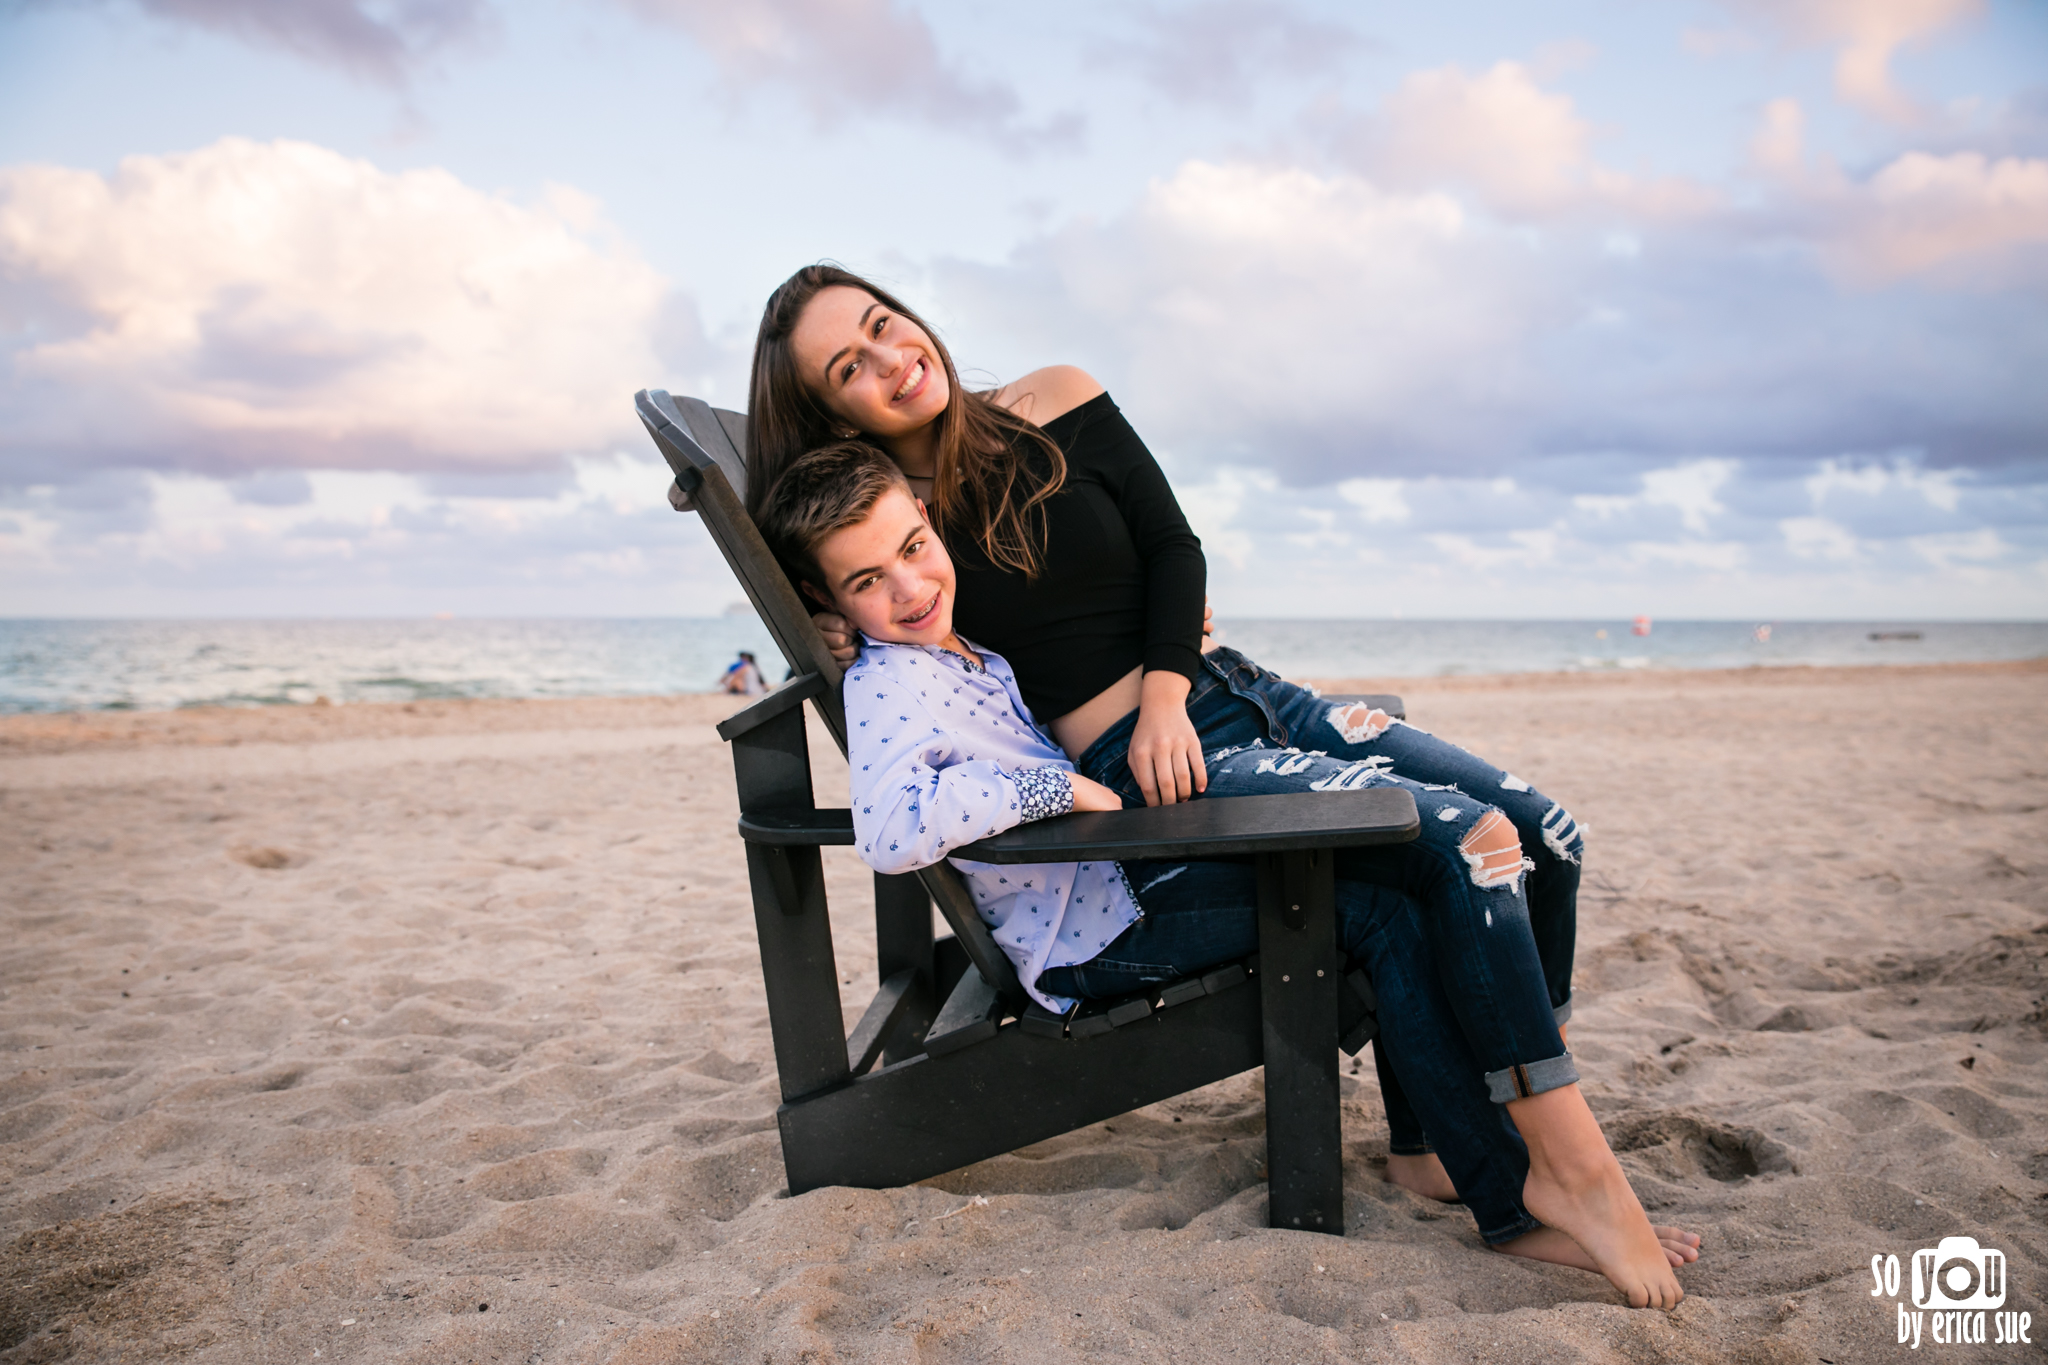 bar-mitzvay-pre-shoot-family-photography-so-you-by-erica-sue-ft-lauderdale-fl-florida-beach-9187.jpg